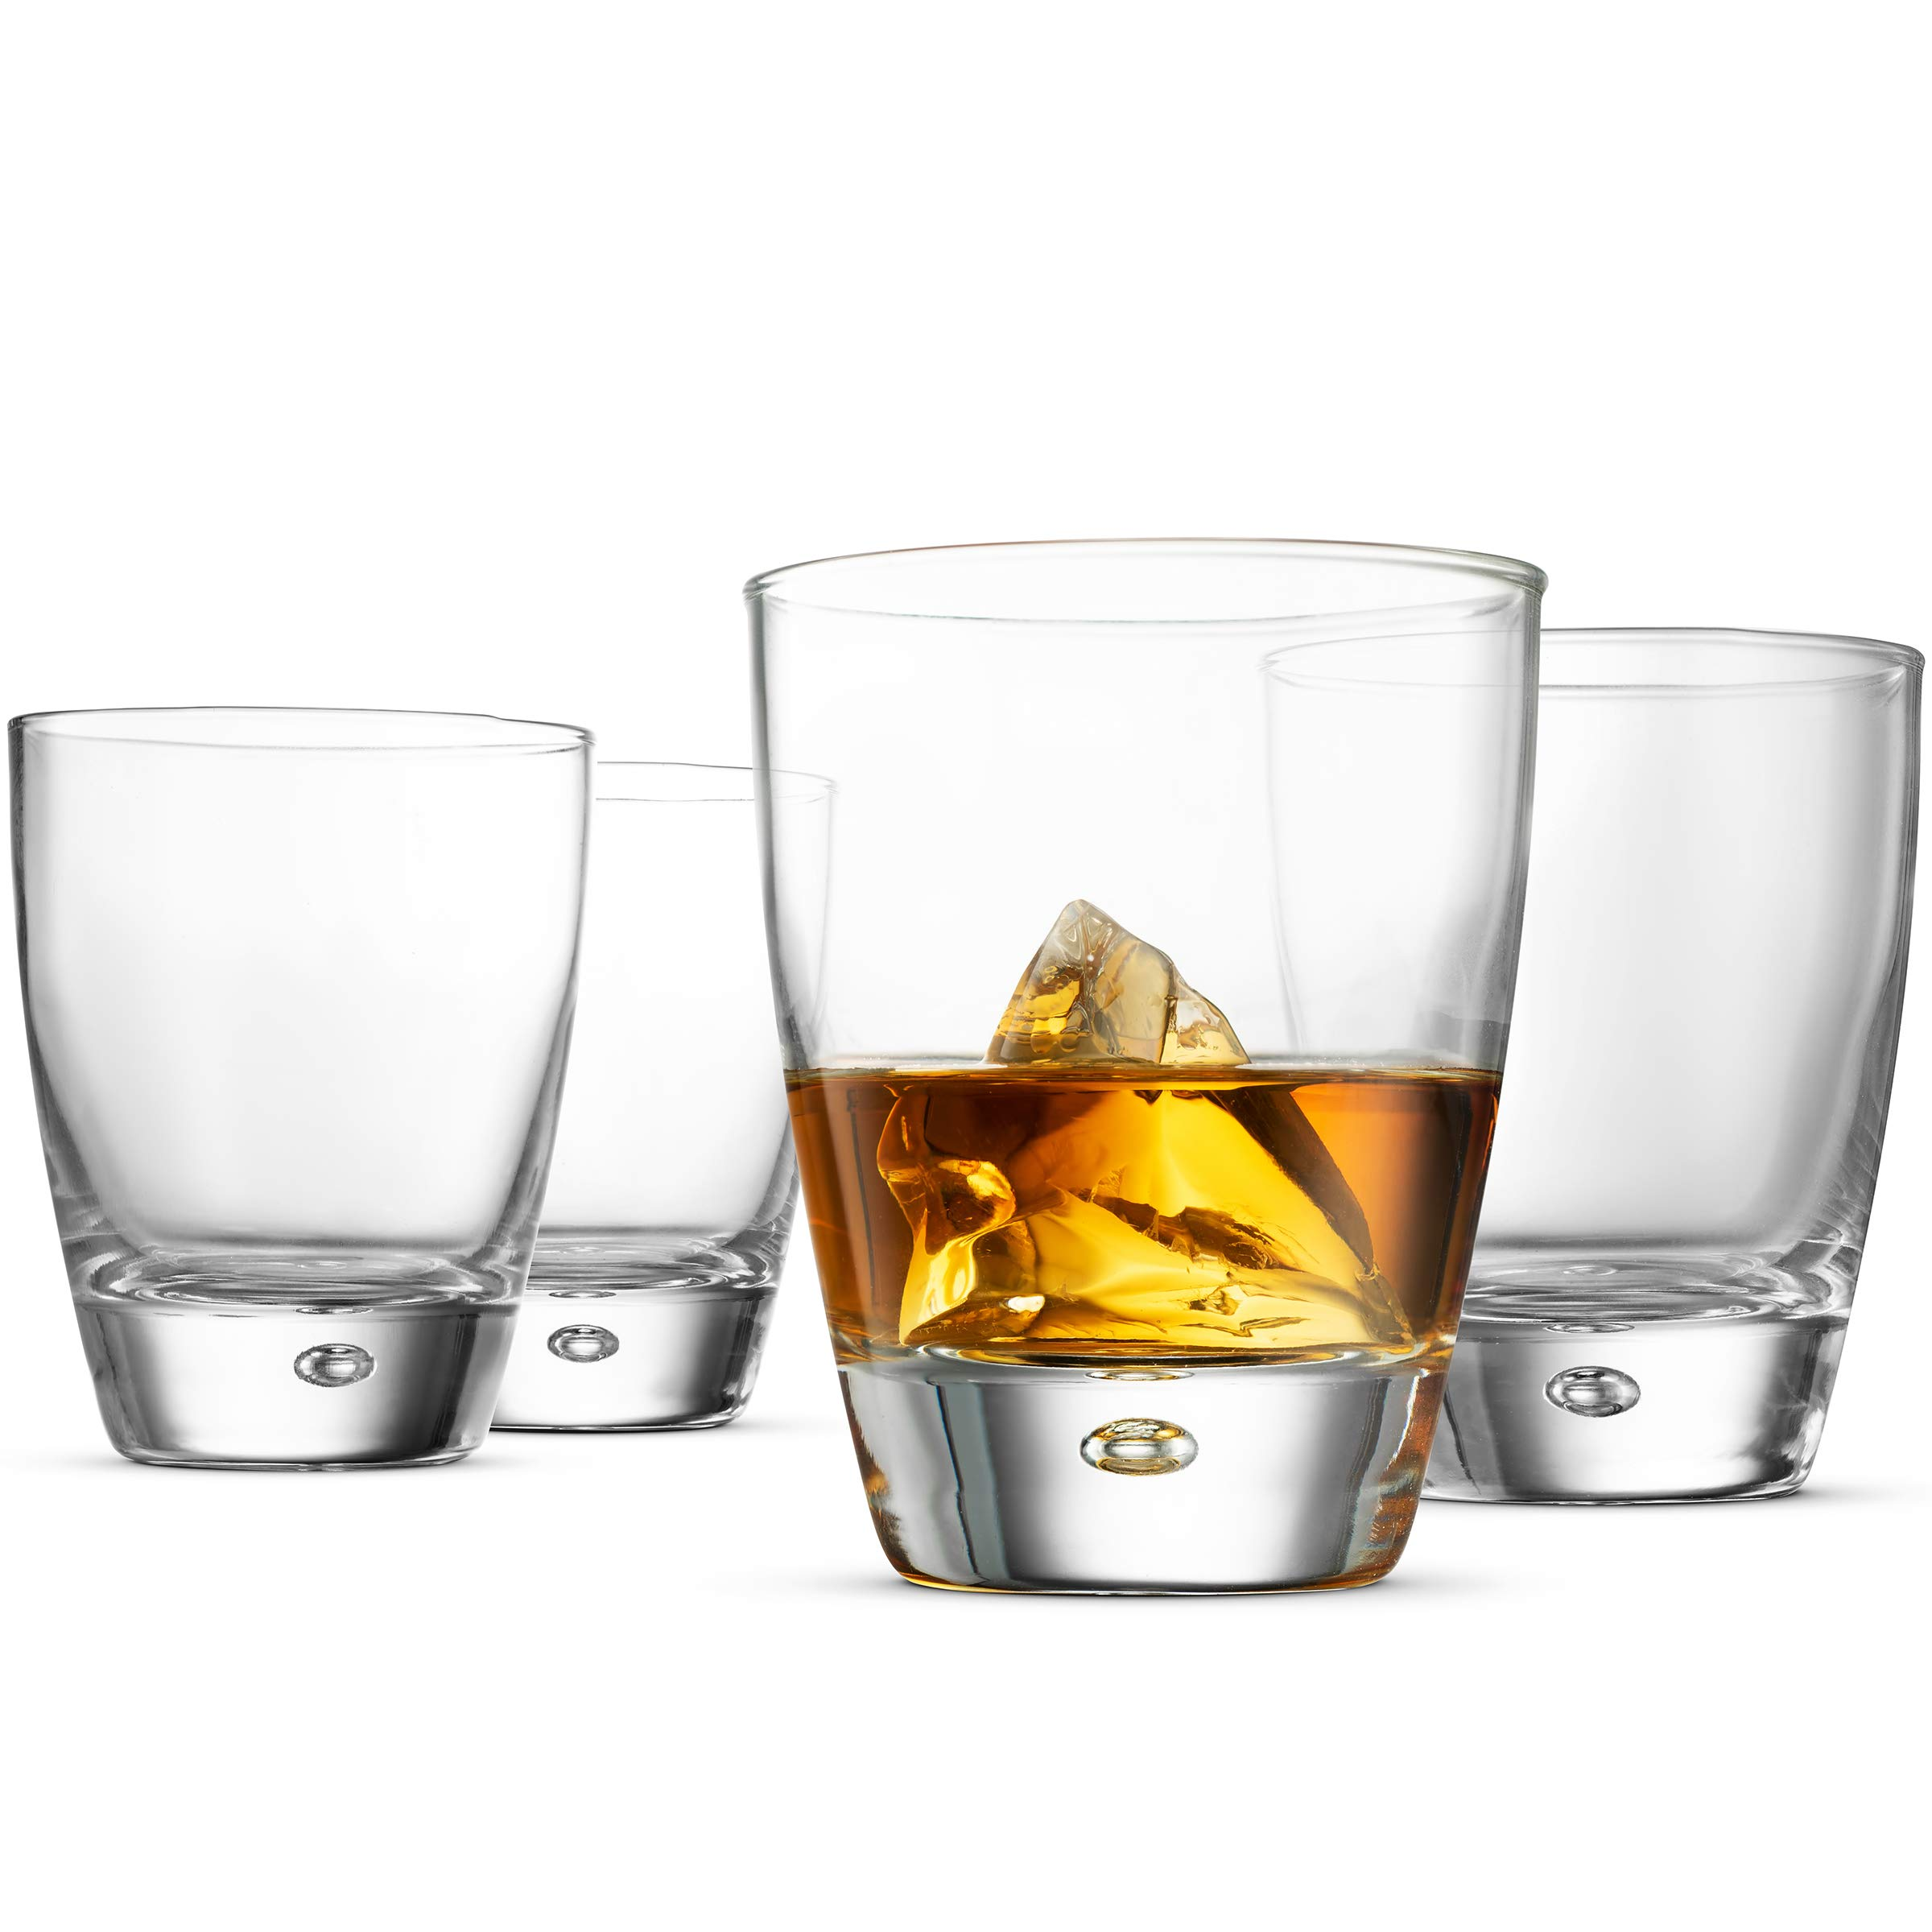 Bormioli Rocco LUNA Double Old Fashioned Whiskey Glasses 11.¾ Ounce (4 Pack) Italian Cocktail Glasses For Whiskey, Bourbon, Scotch, Alcohol, Water, Juice, Large Rock Glasses, Everyday Drinking Glasses